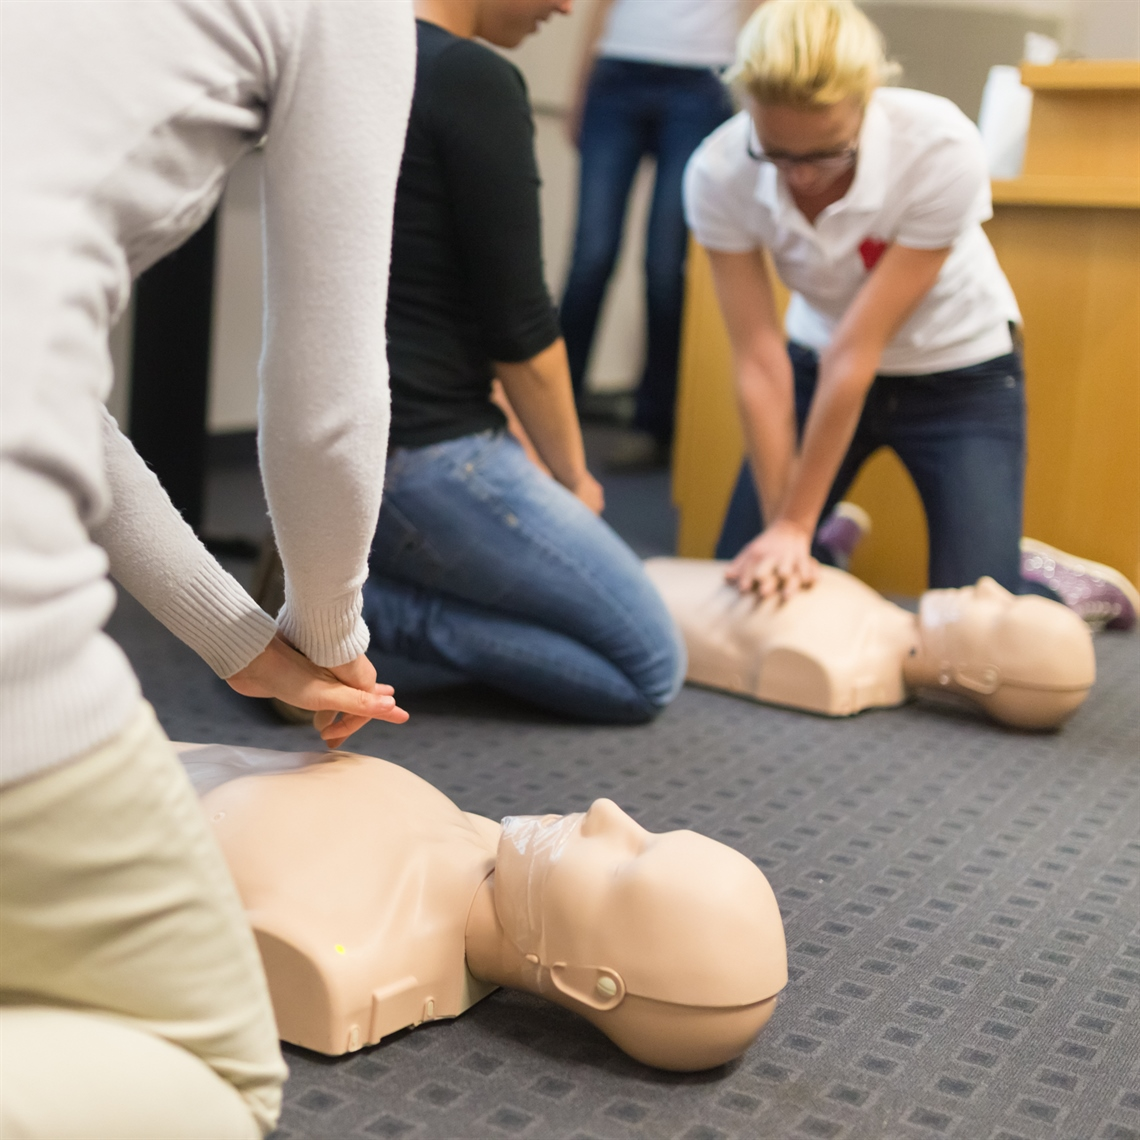 Adults practicing giving CPR on a dummy